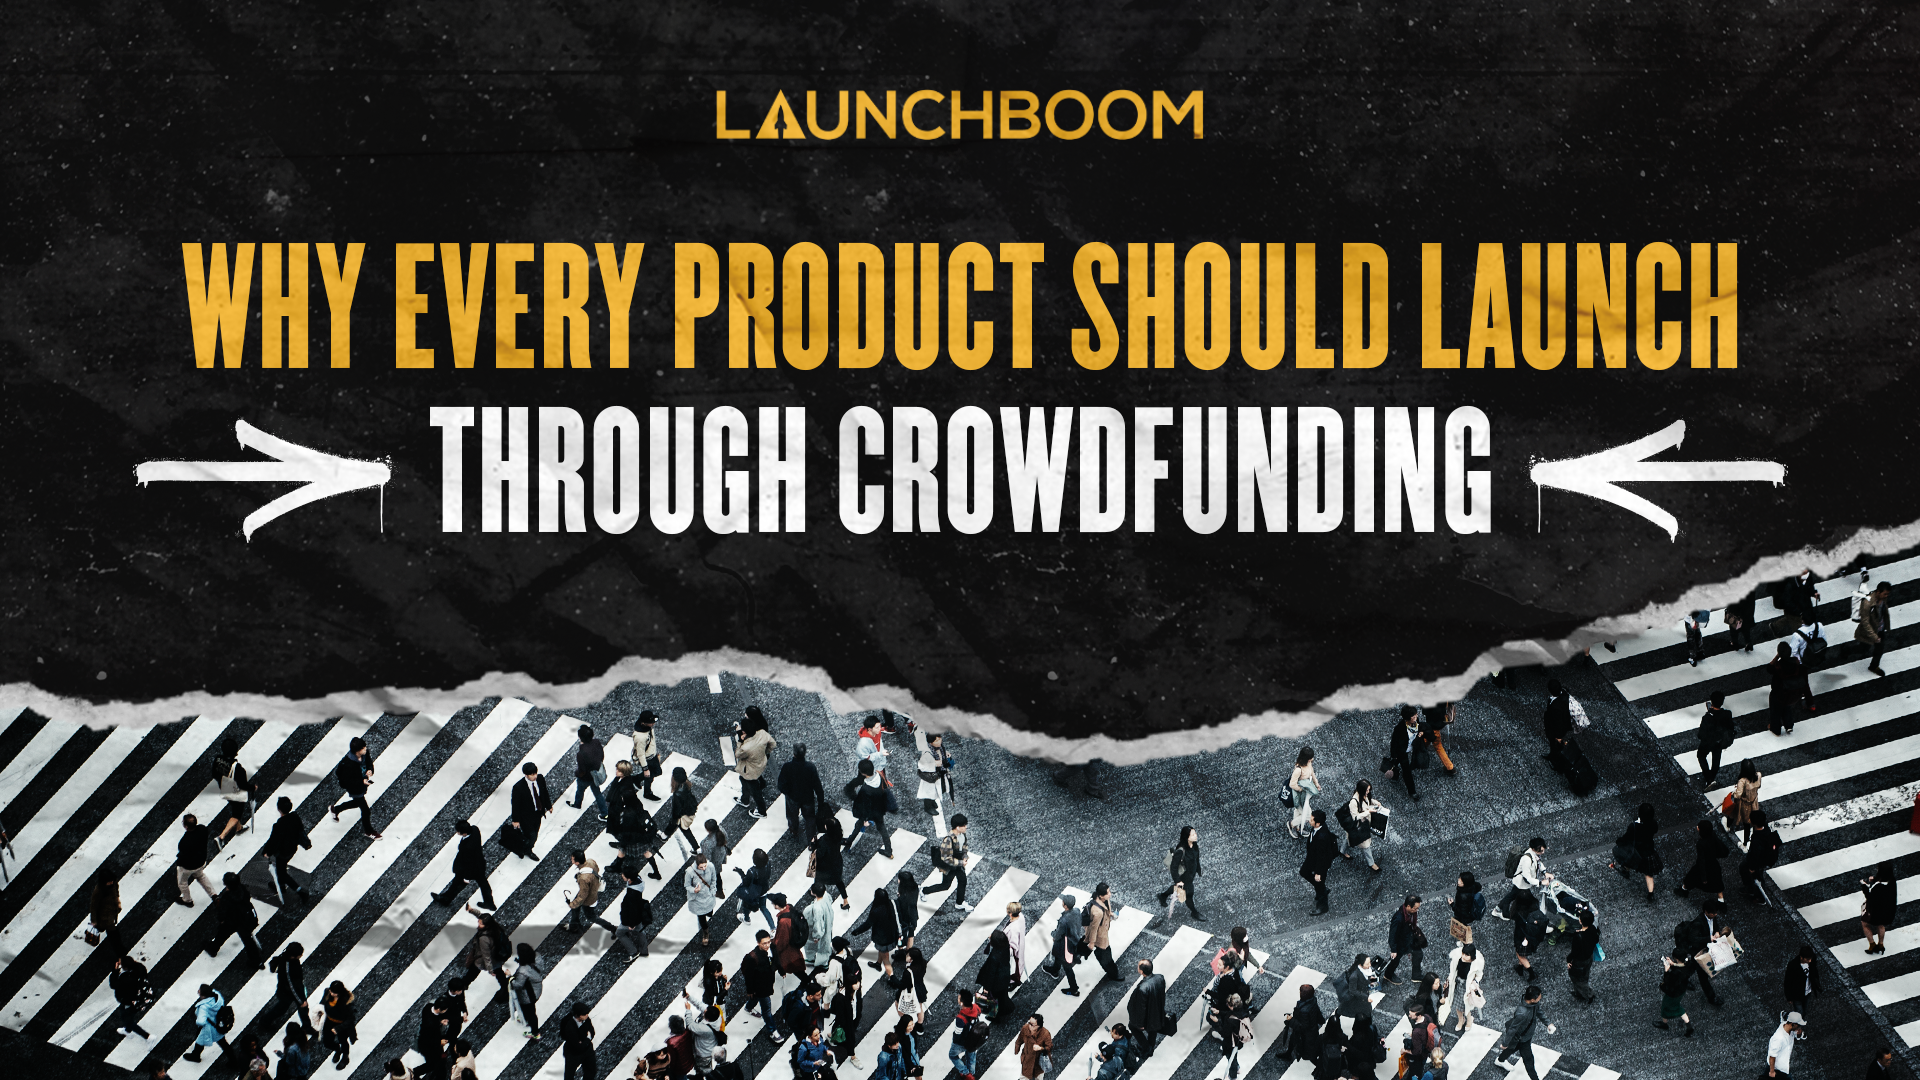 Why every product should launch through crowdfunding